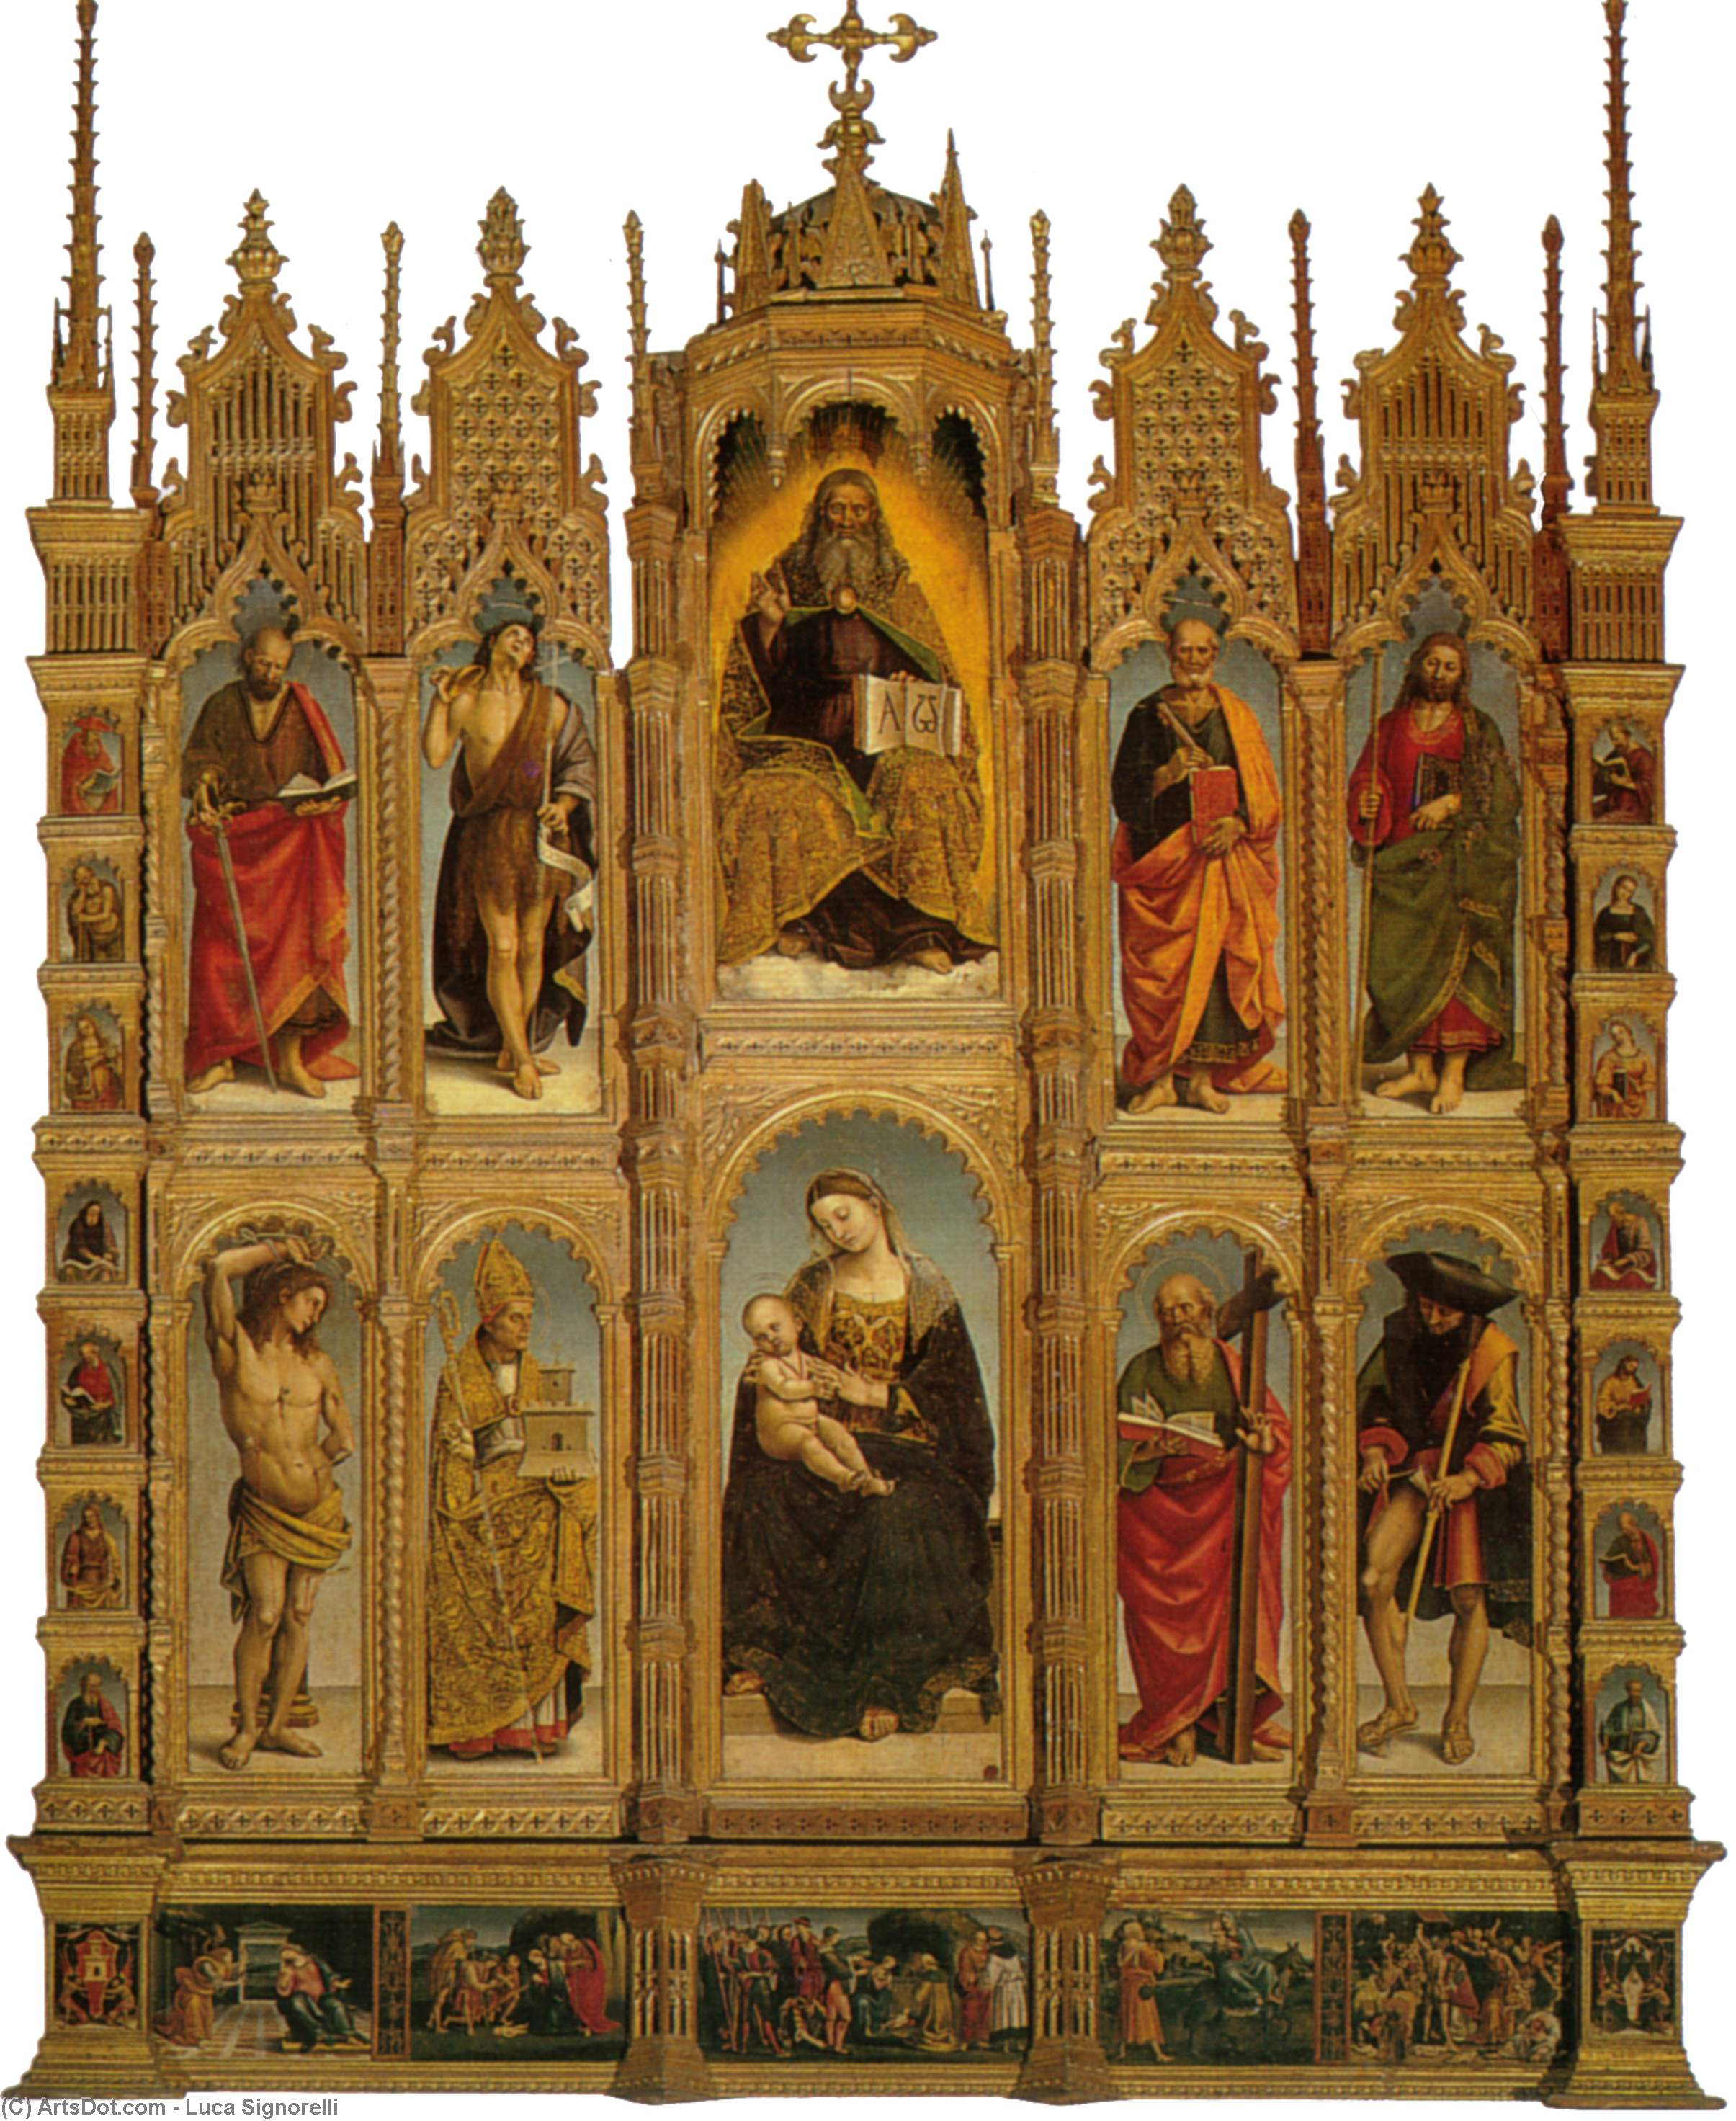 Polyptych by Luca Signorelli (1450-1523, Italy)